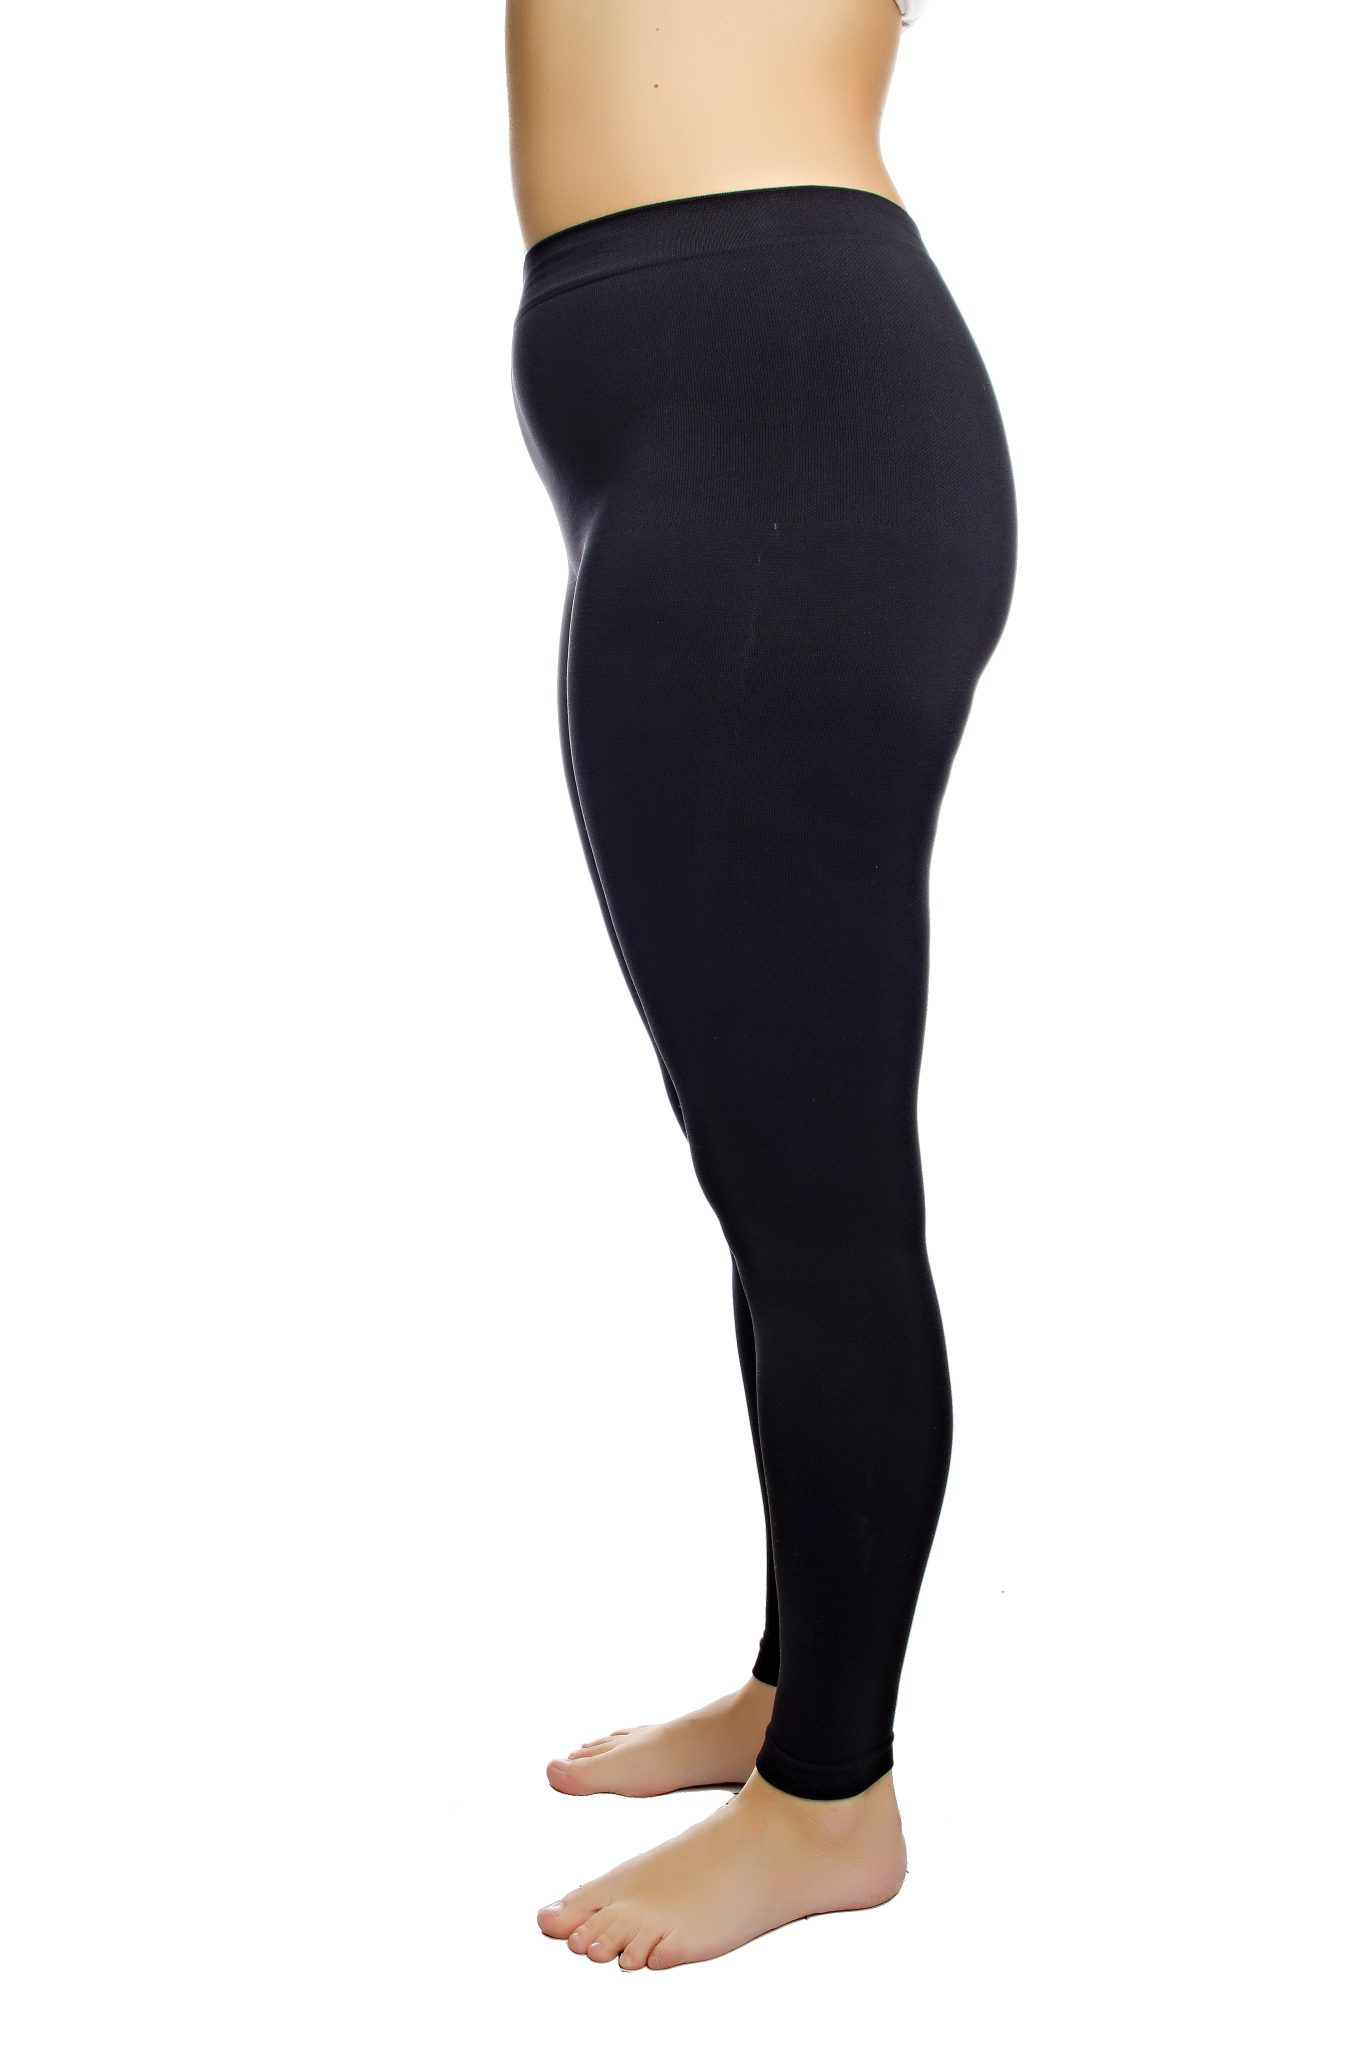 Leggings | Best Seamless, Anti-Chafing & Stretchy Leggings for Women